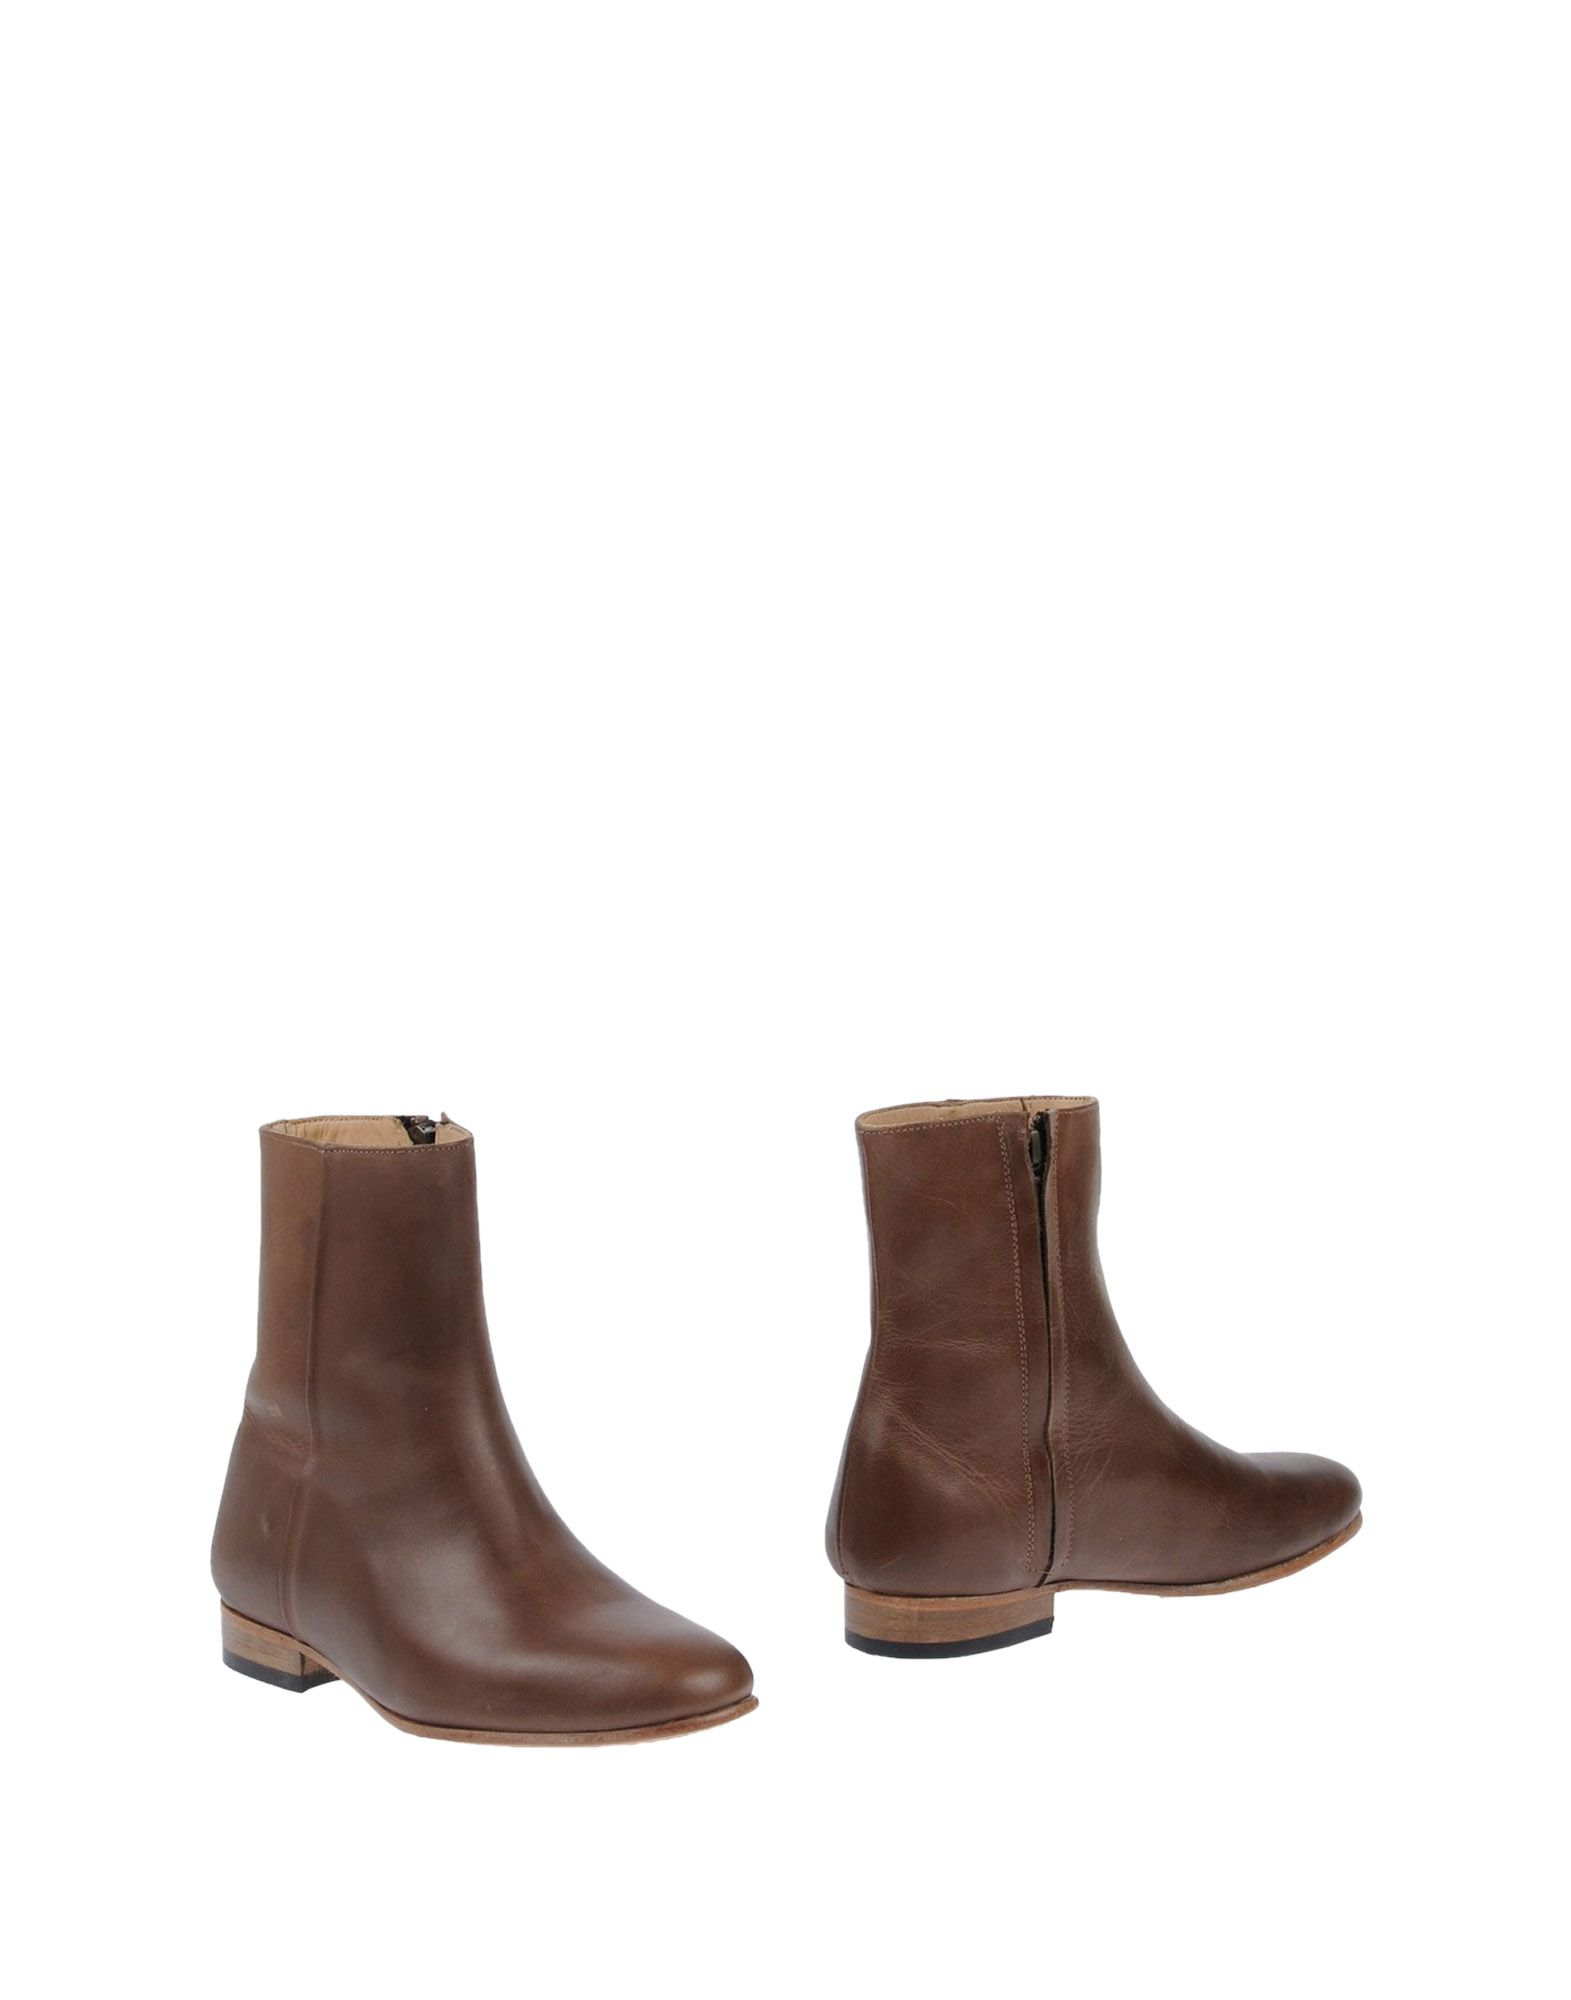 DIEPPA RESTREPO Ankle Boot in Brown